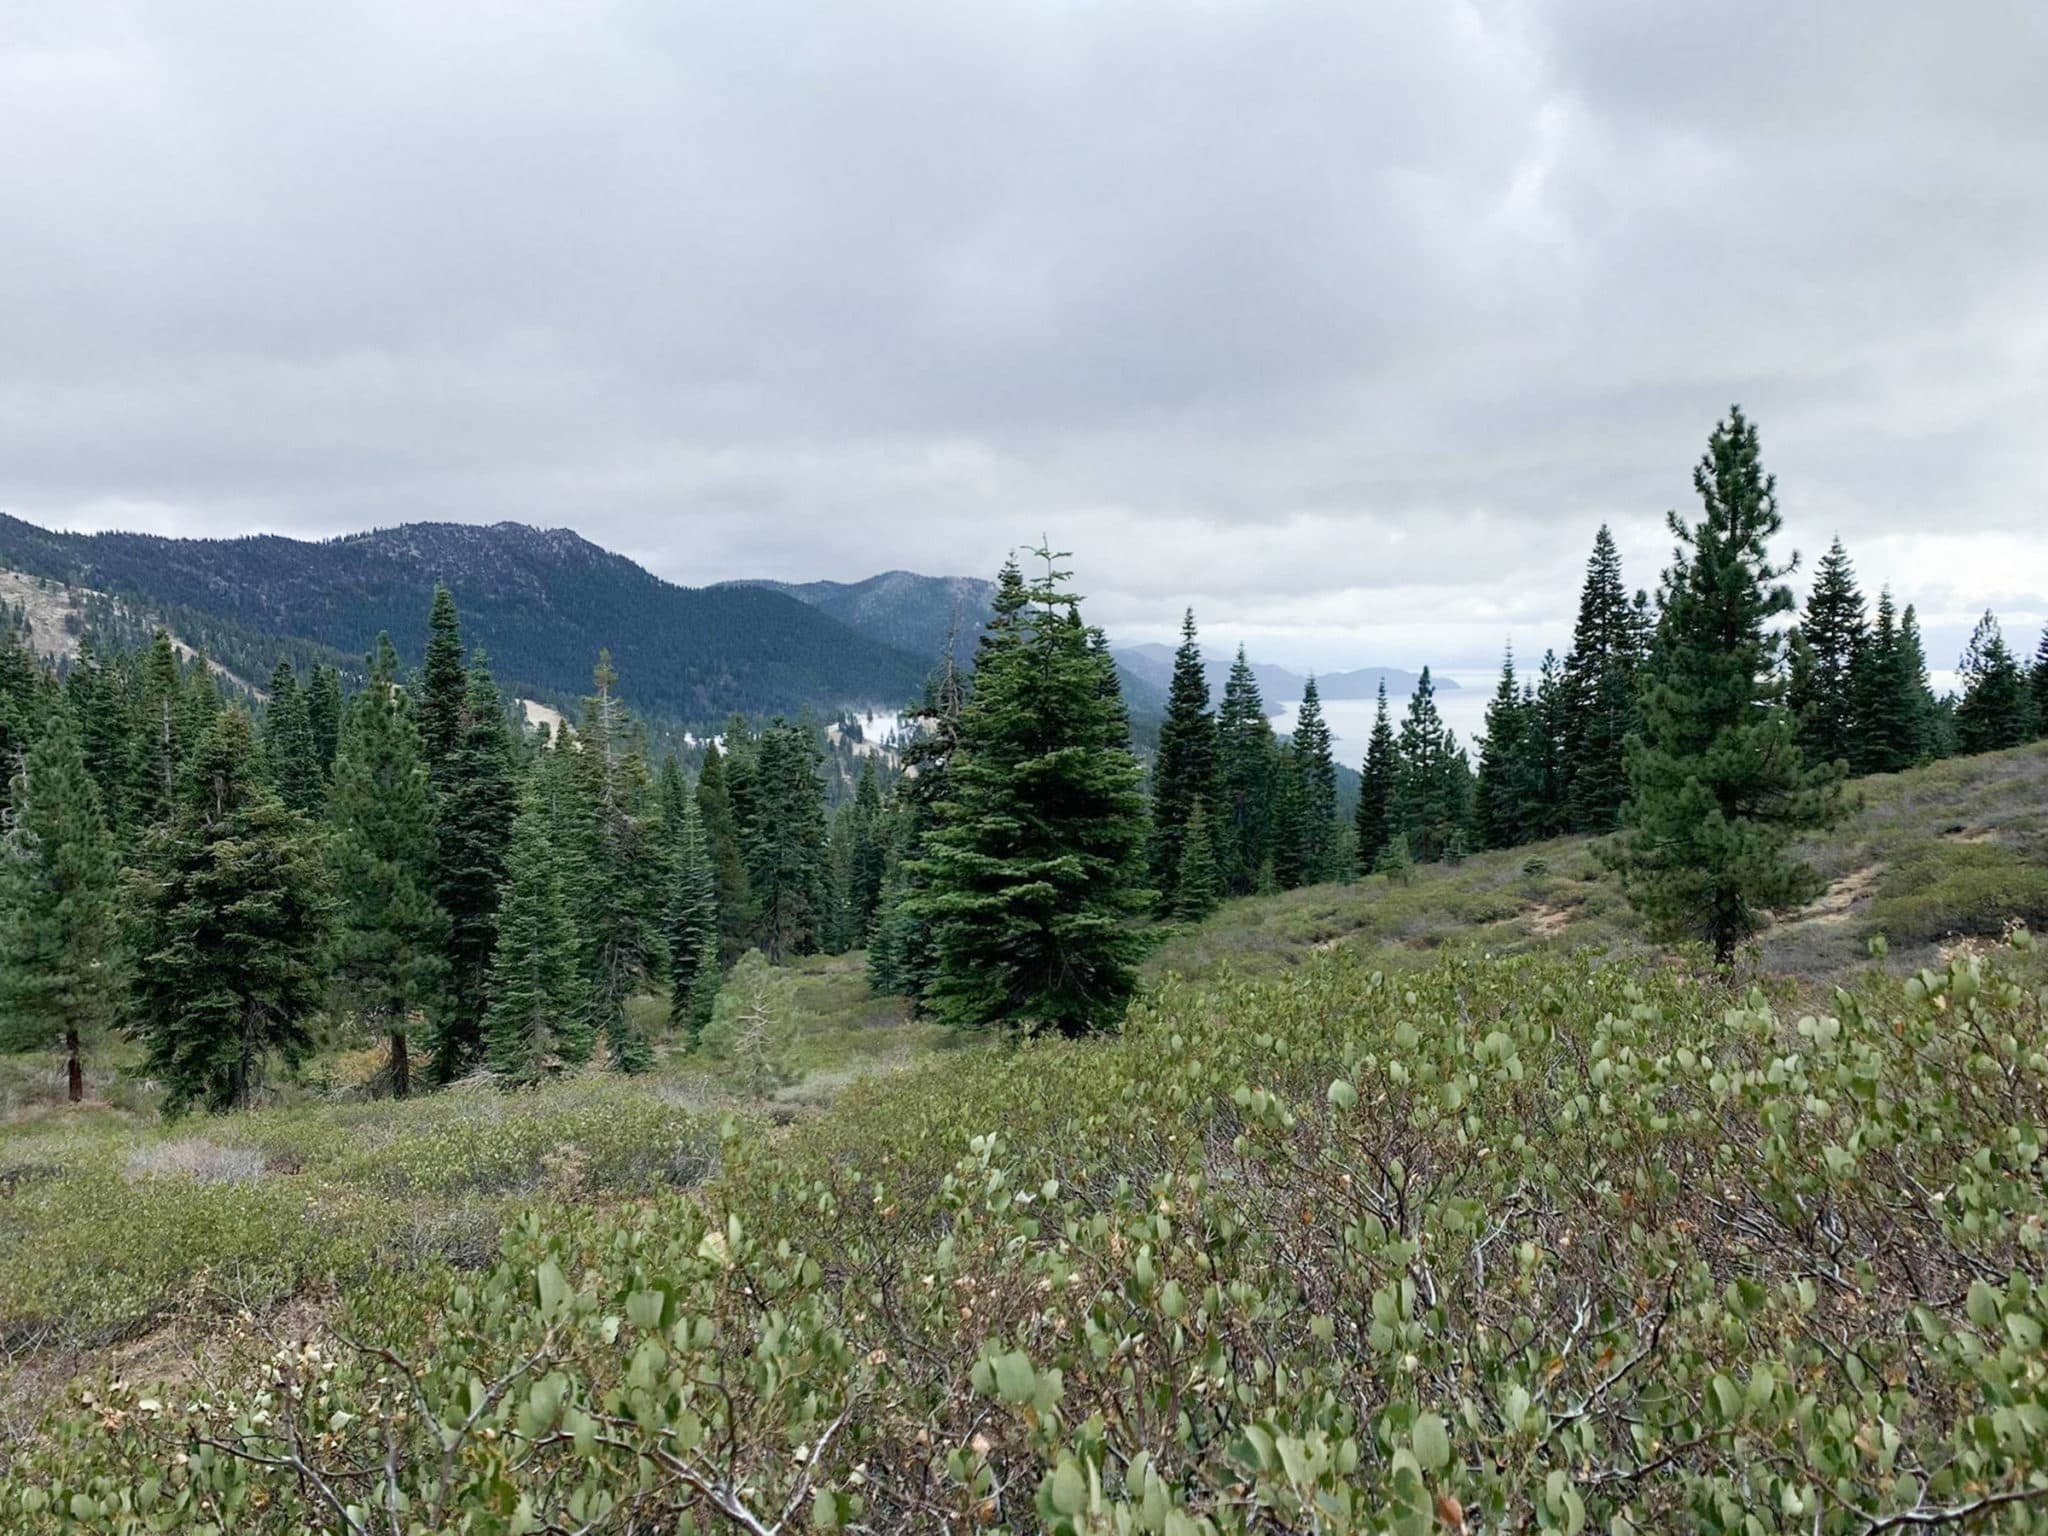 A meadow filled with pine trees and purple flowers in Lake Tahoe.